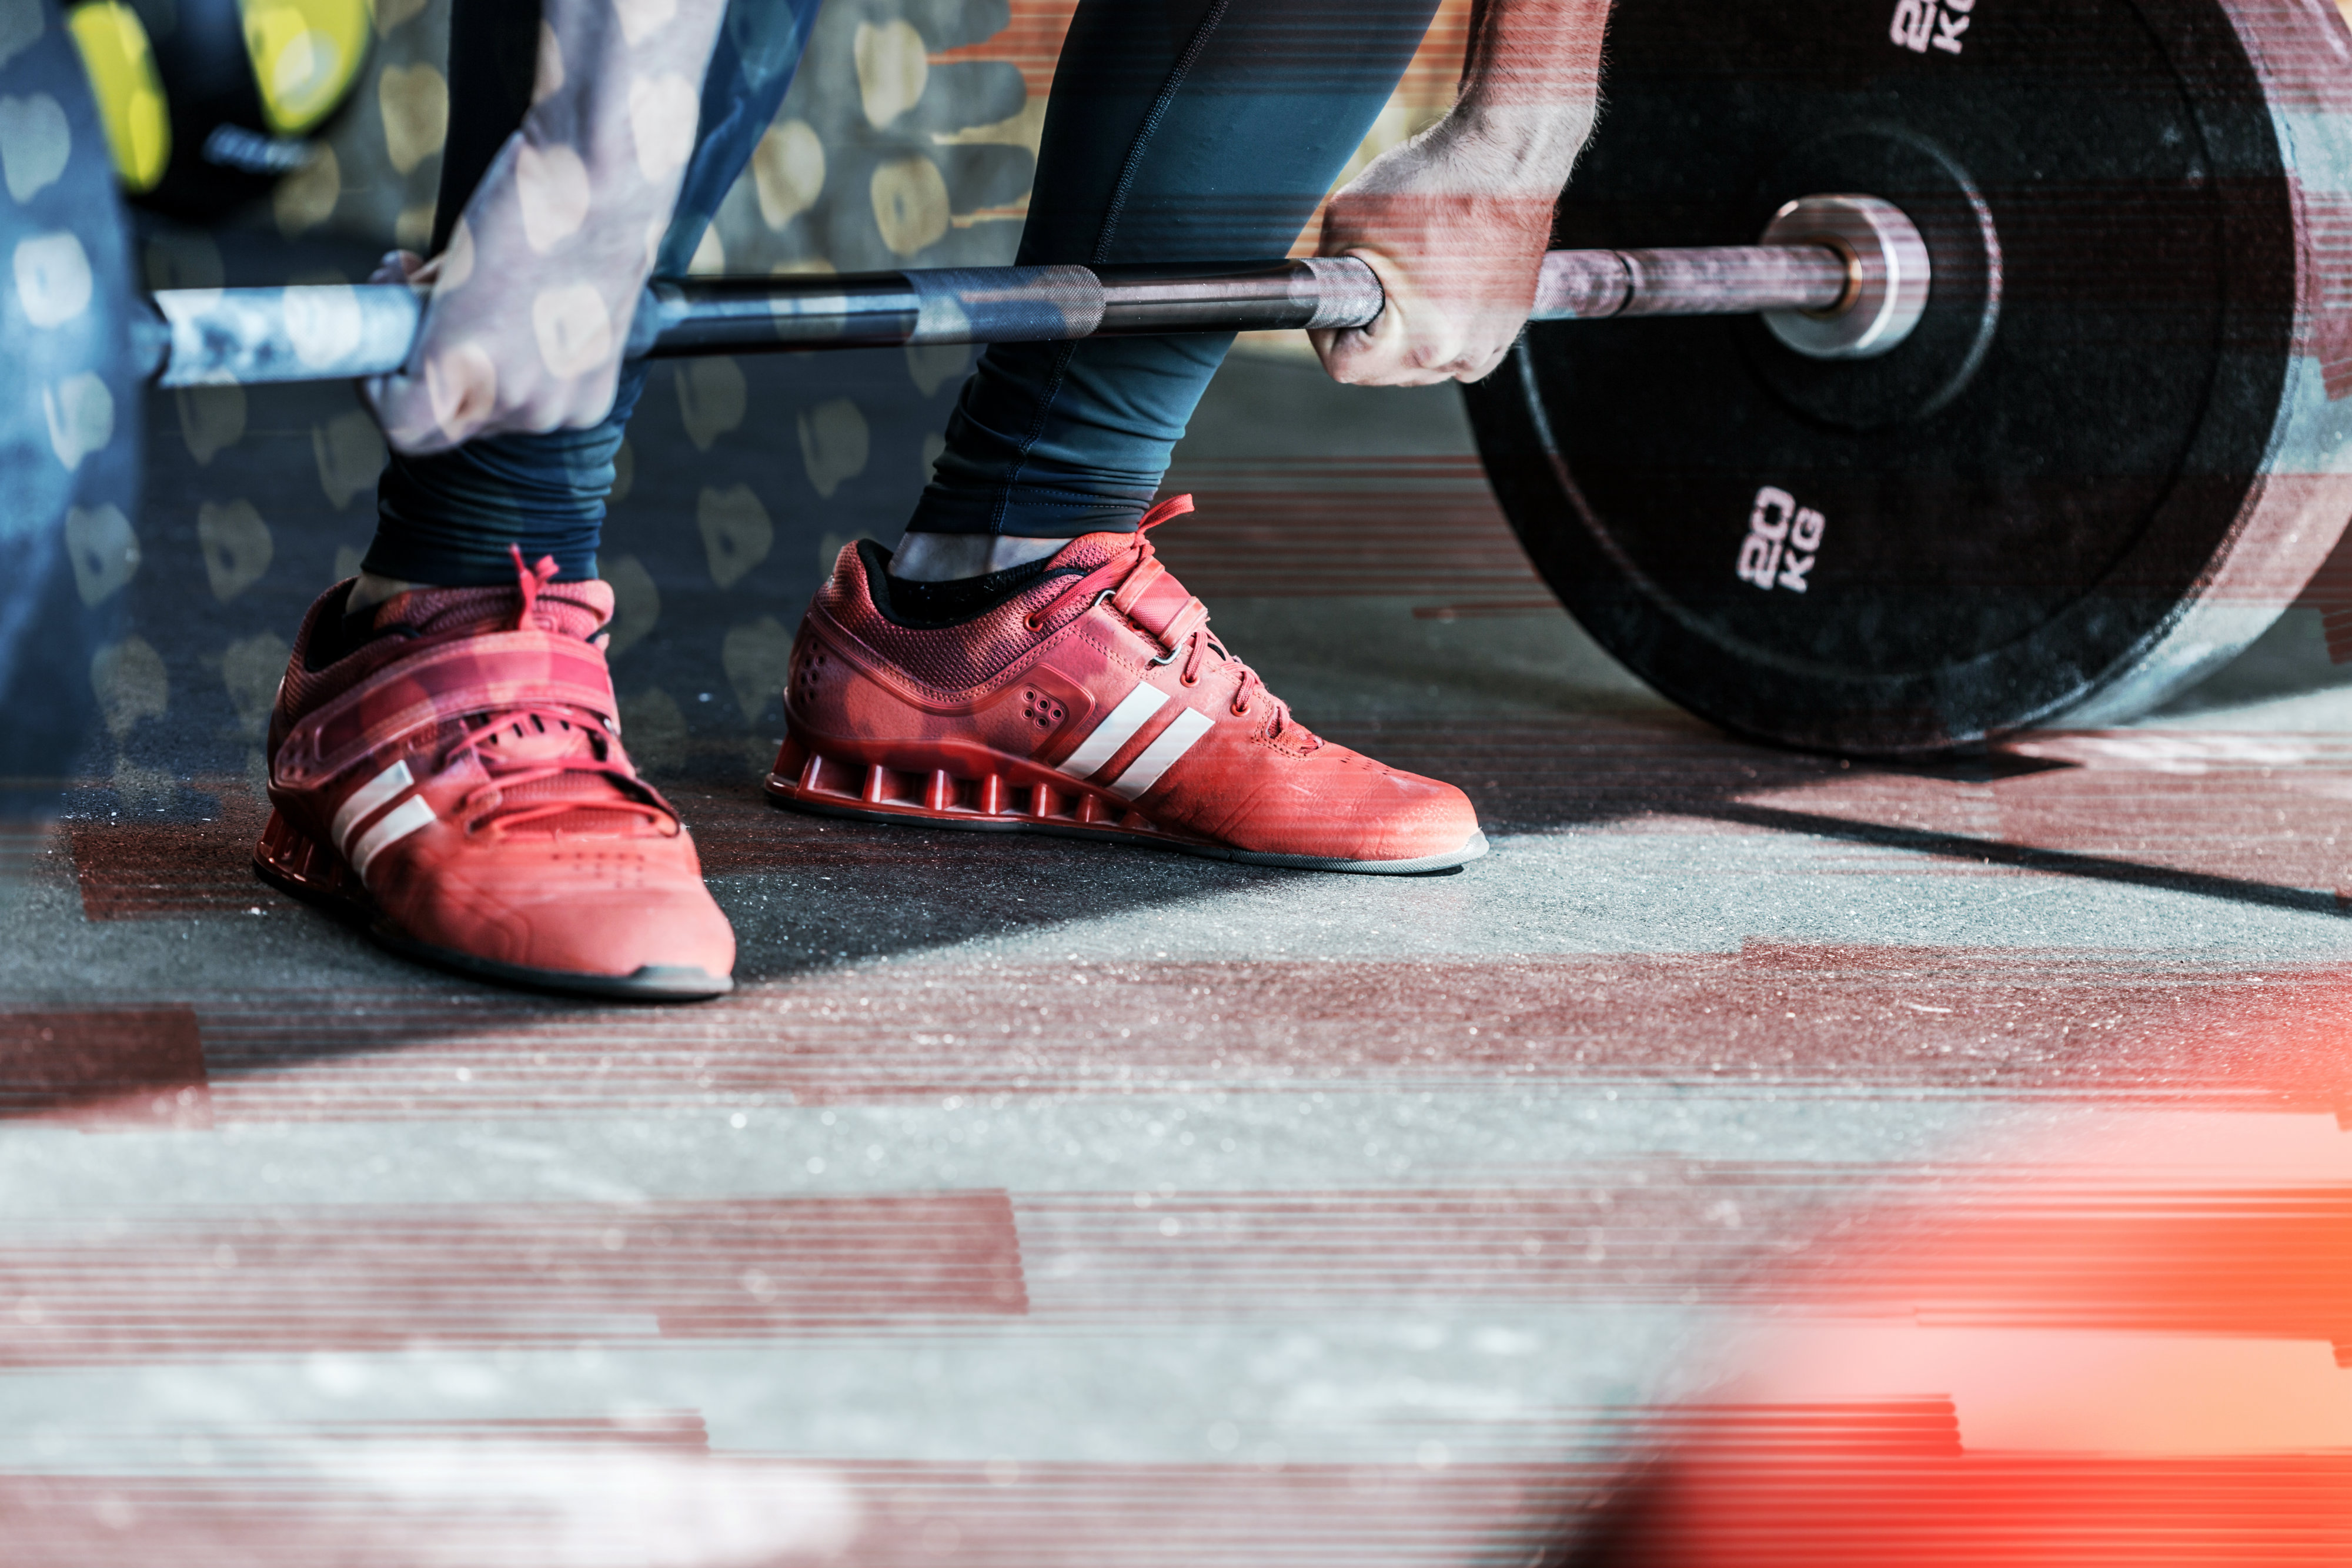 RhinoFit does heavy lifting for gym owners